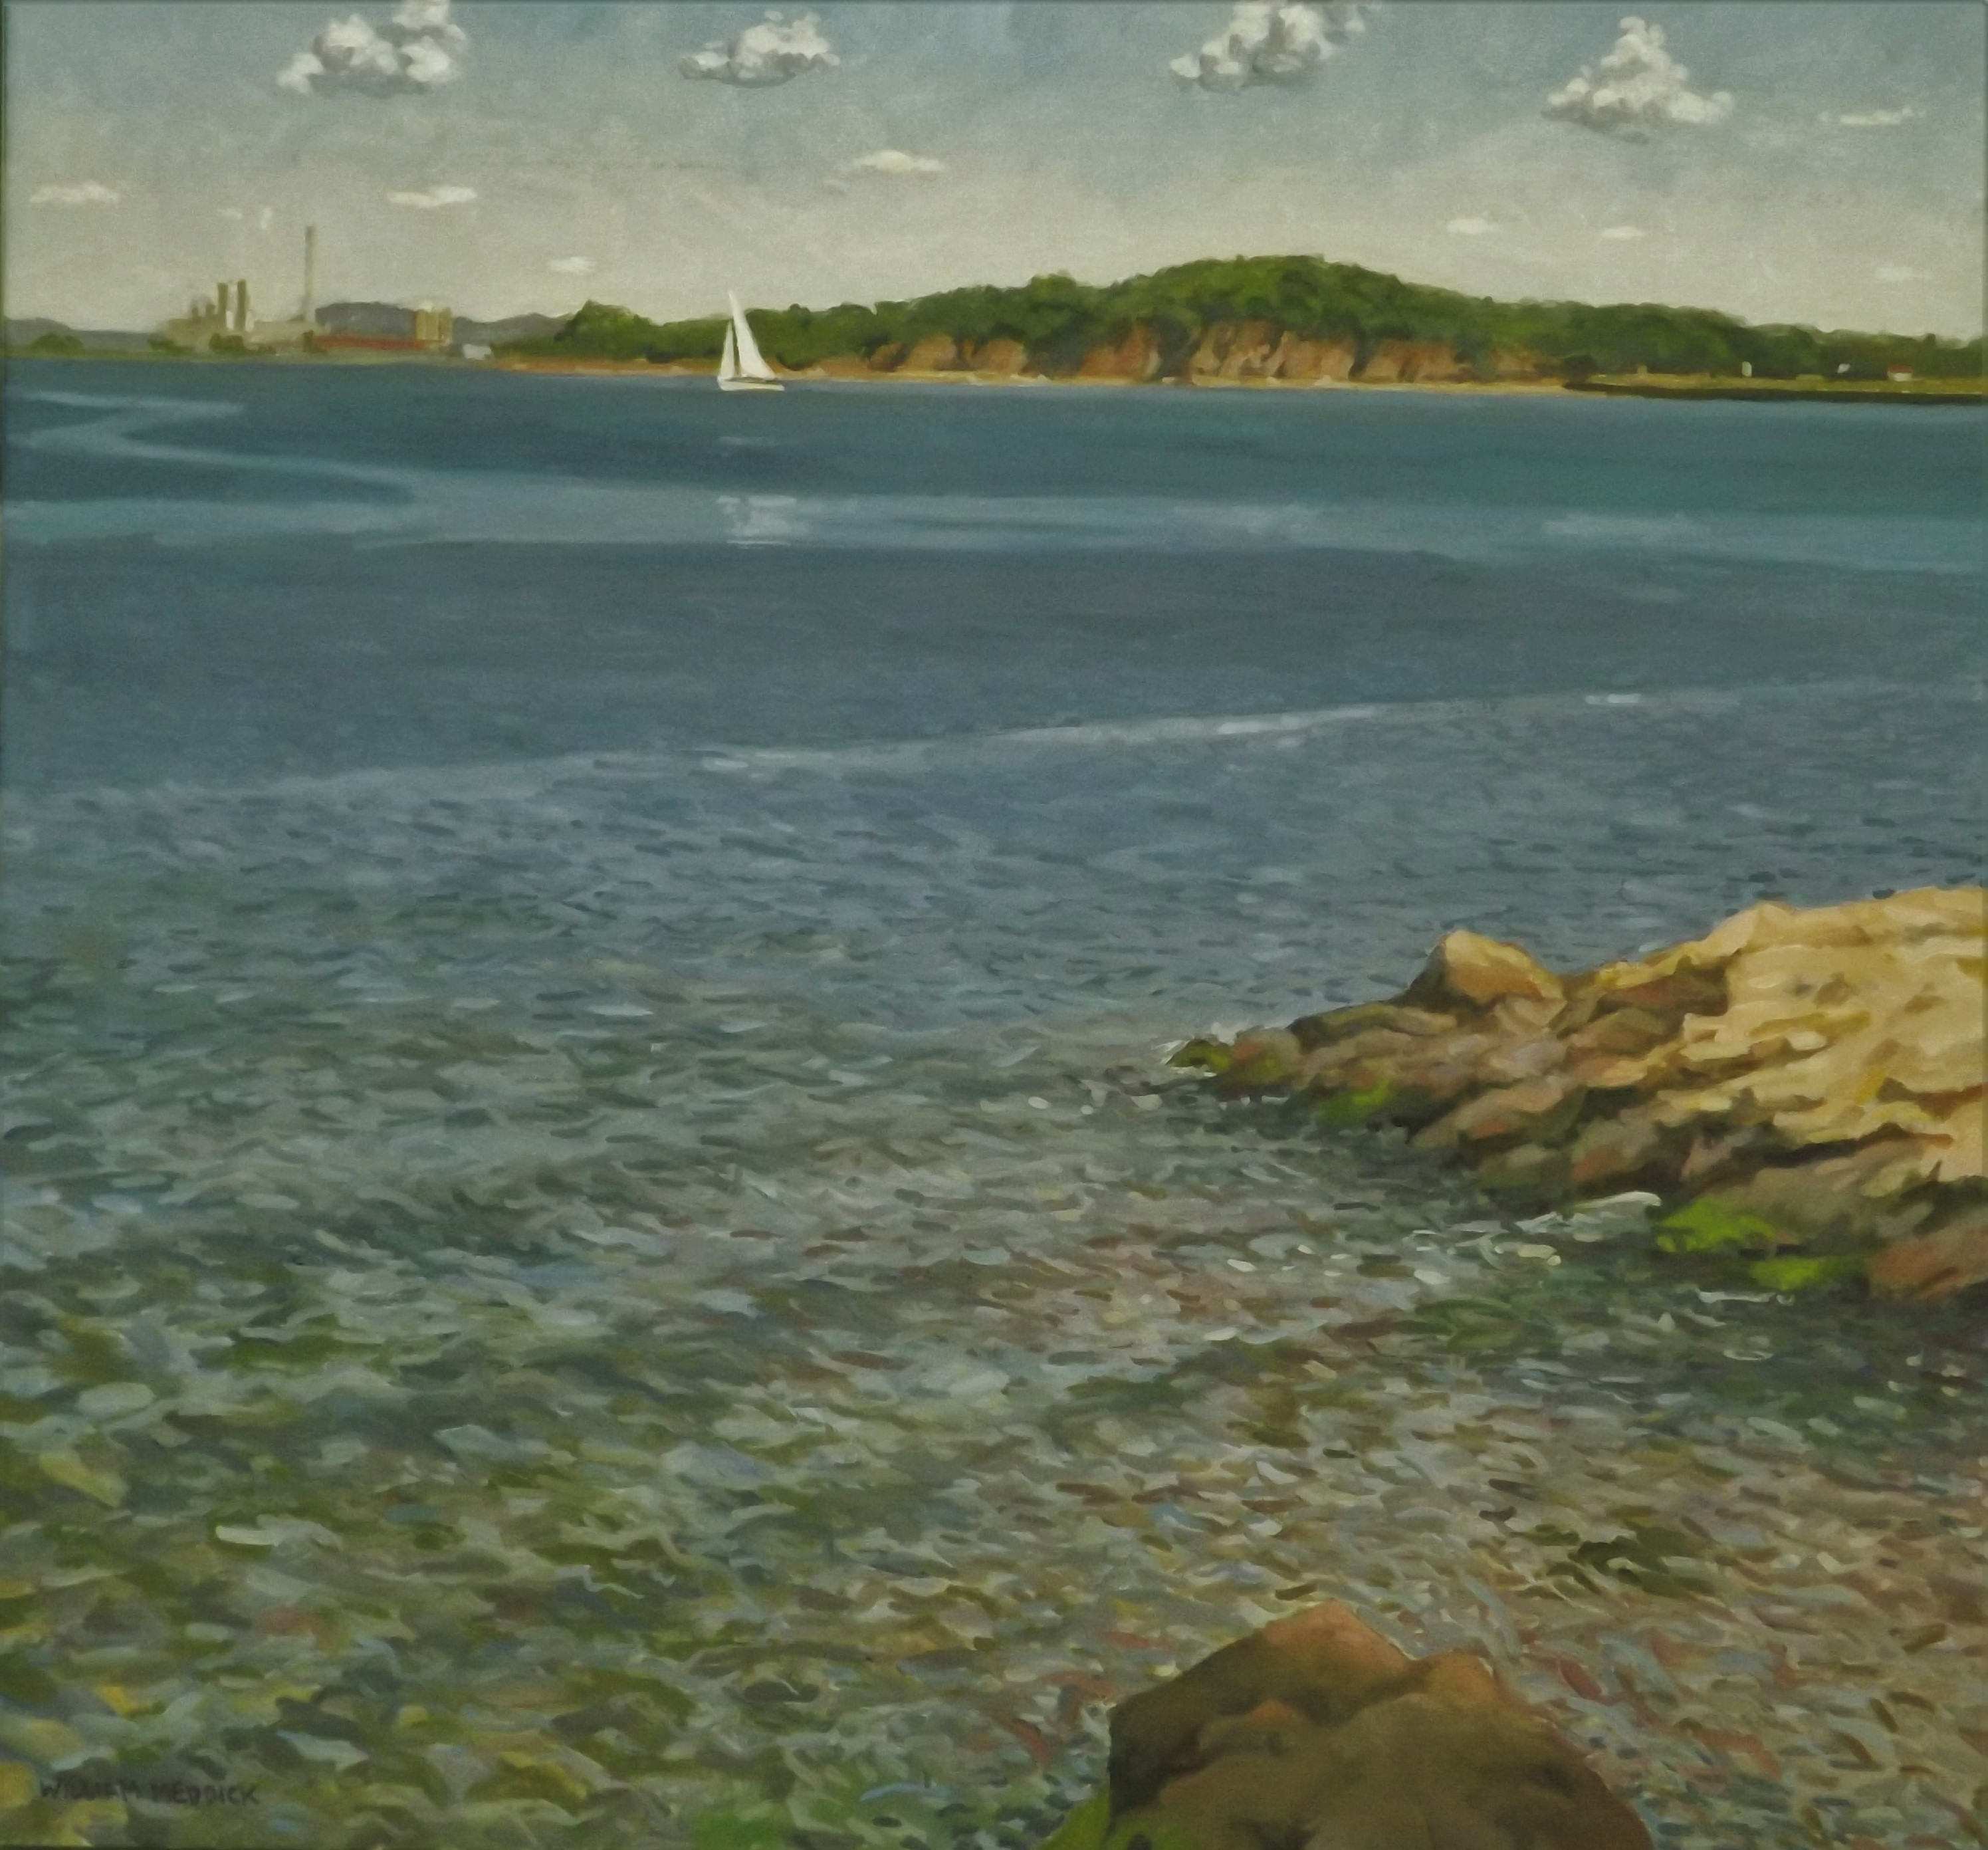 Morris Cove from Lighthouse Point